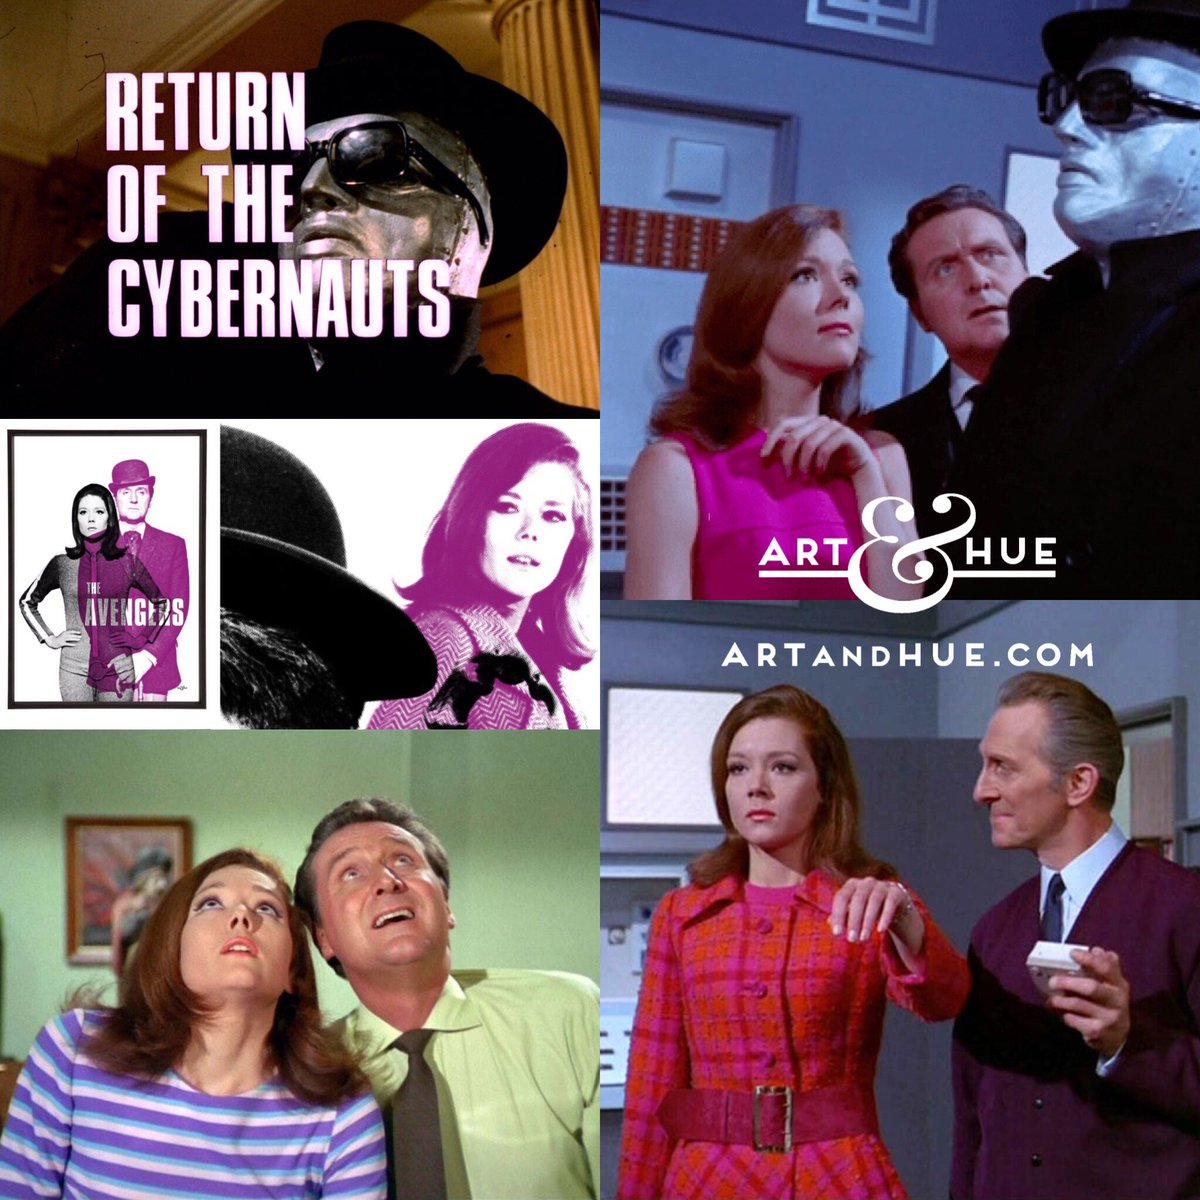 """On this day in 1968, The Avengers episode """"Return of the Cybernauts"""" aired in the USA.   http://artandhue.com/theavengers   #OnThisDay #OTD #dianarigg #mrspeel #patrickmacnee #johnsteed #EmmaPeel #TheAvengers #PeterCushing #ReturnOfTheCybernauts #CultTV #Cybernauts #TheCybernauts"""